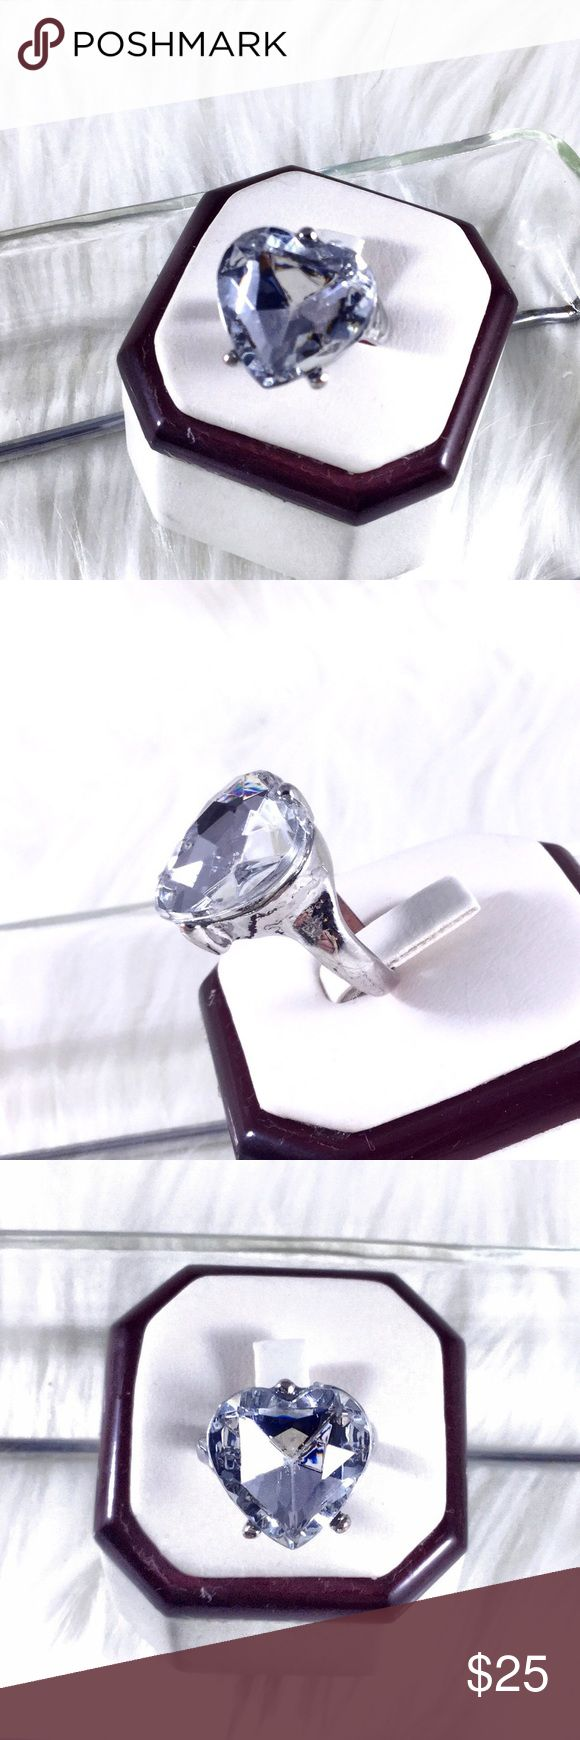 """Vintage Crystal Heart Cocktail Ring Sz 8. Large .75"""" diam  Clear heart shaped faceted Crystal Statement Ring  diamond cut. Mixed silver metal alloy. Back of ring has some discoloration. Art Deco retro bohemian boho glam. Comes with dust bag. Only 1 available. High end costume jewelry. Source is Estate vintage jewelry. 🌟 Save the most with bundles. I offer 25% OFF on bundles of 2+ items. I accept reasonable offers on single items & bundles. NO trades/holds/lowball offers. Boutique Jewelry…"""